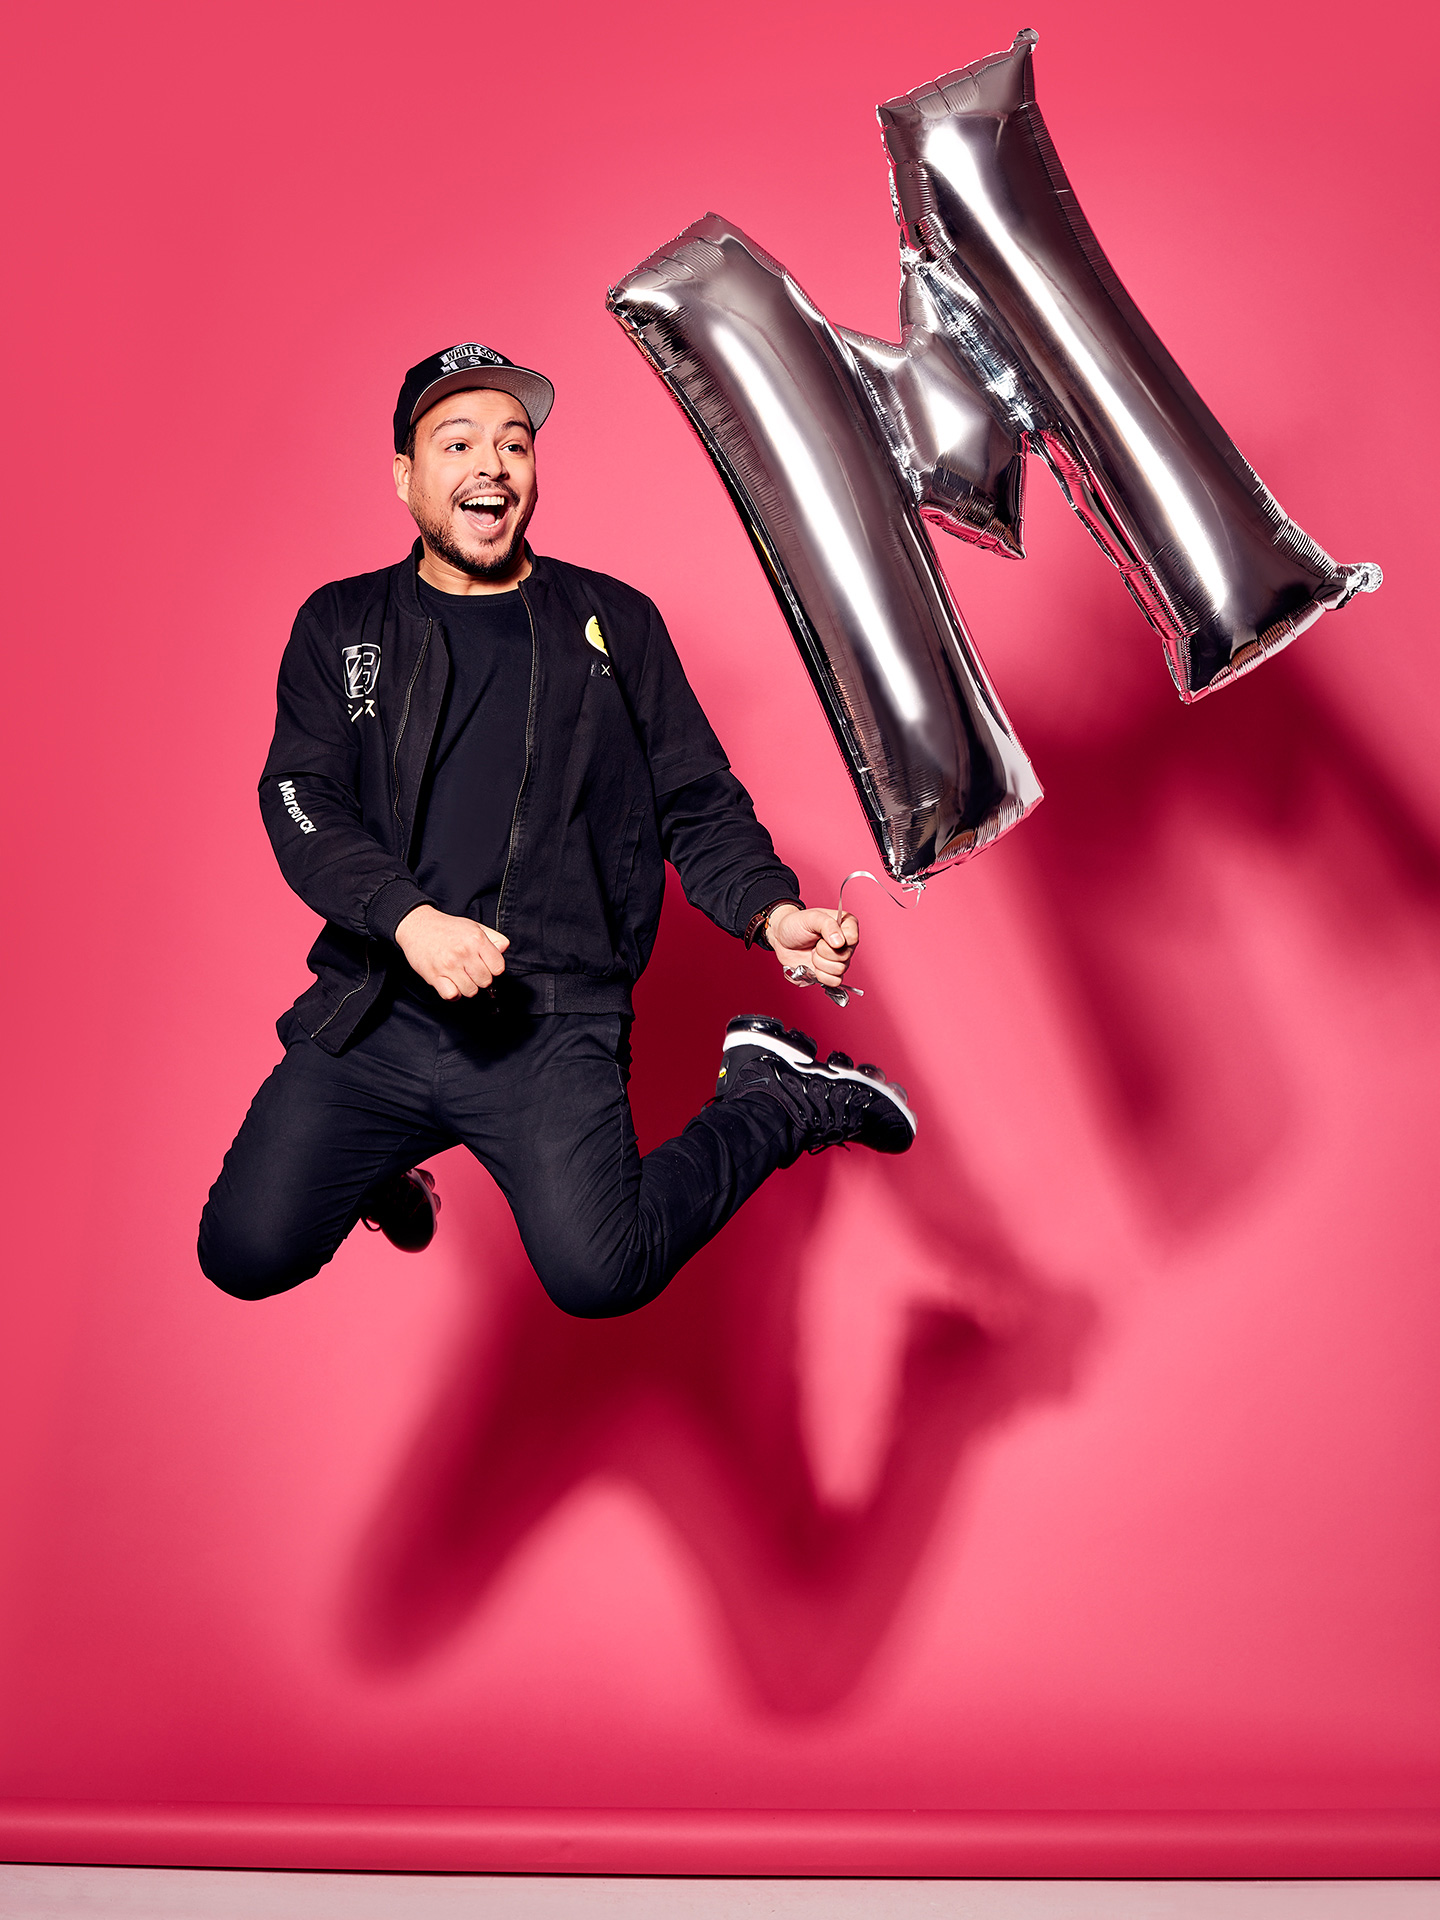 portrait of Mehdi jumping in the air with silver M balloon pink background by Jocelyn Michel for Journal de Montréal